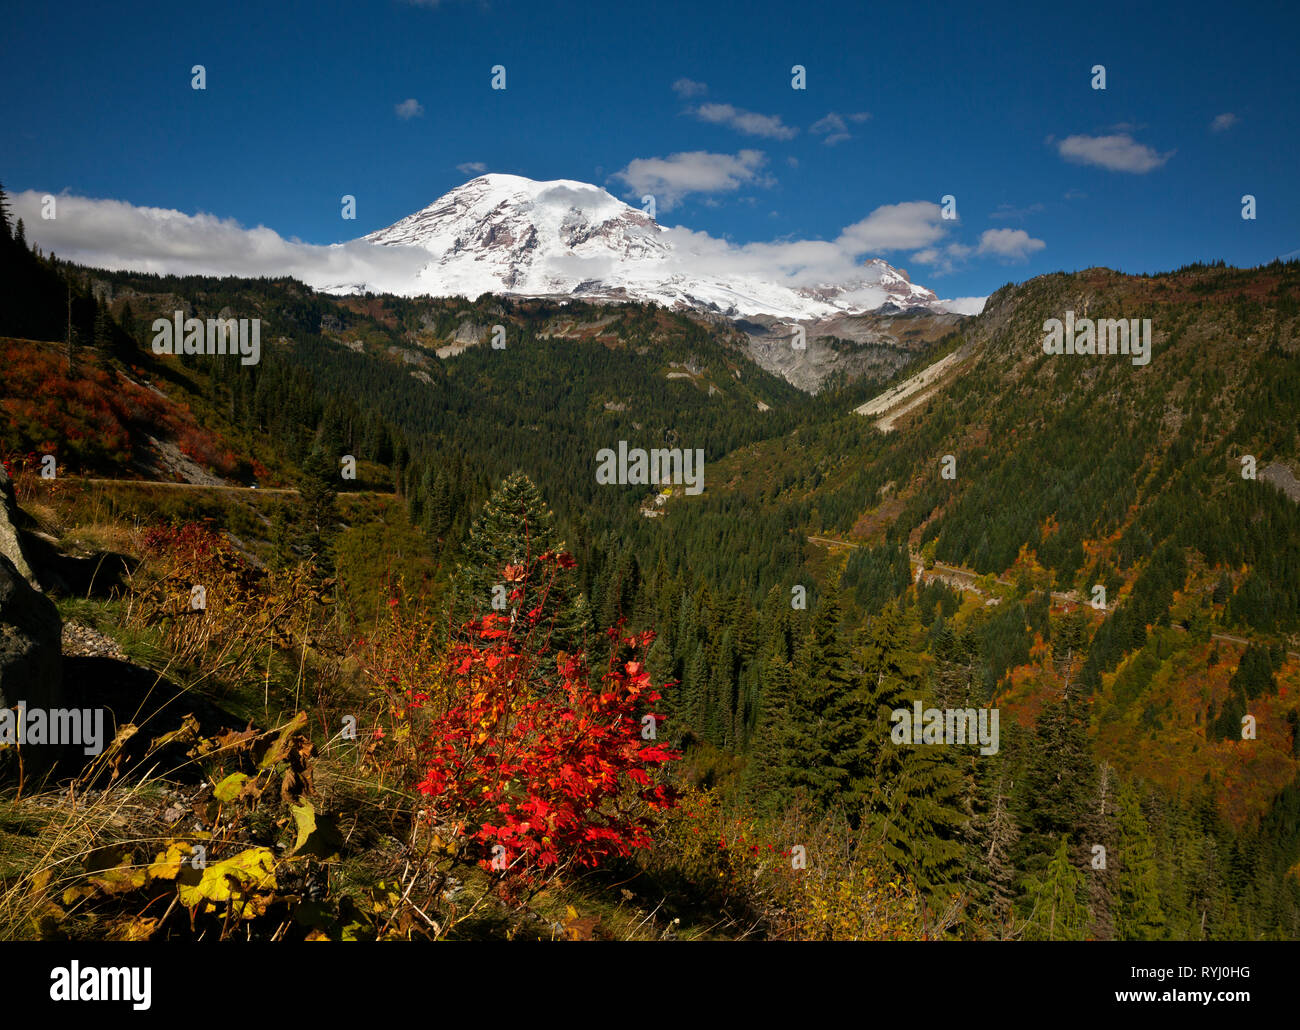 WA15945-00...WASHINGTON - Fall color in Stevens Canyon from Stevens Canyon Bend pullout and Mount Rainier in Mount Rainier National Park. - Stock Image